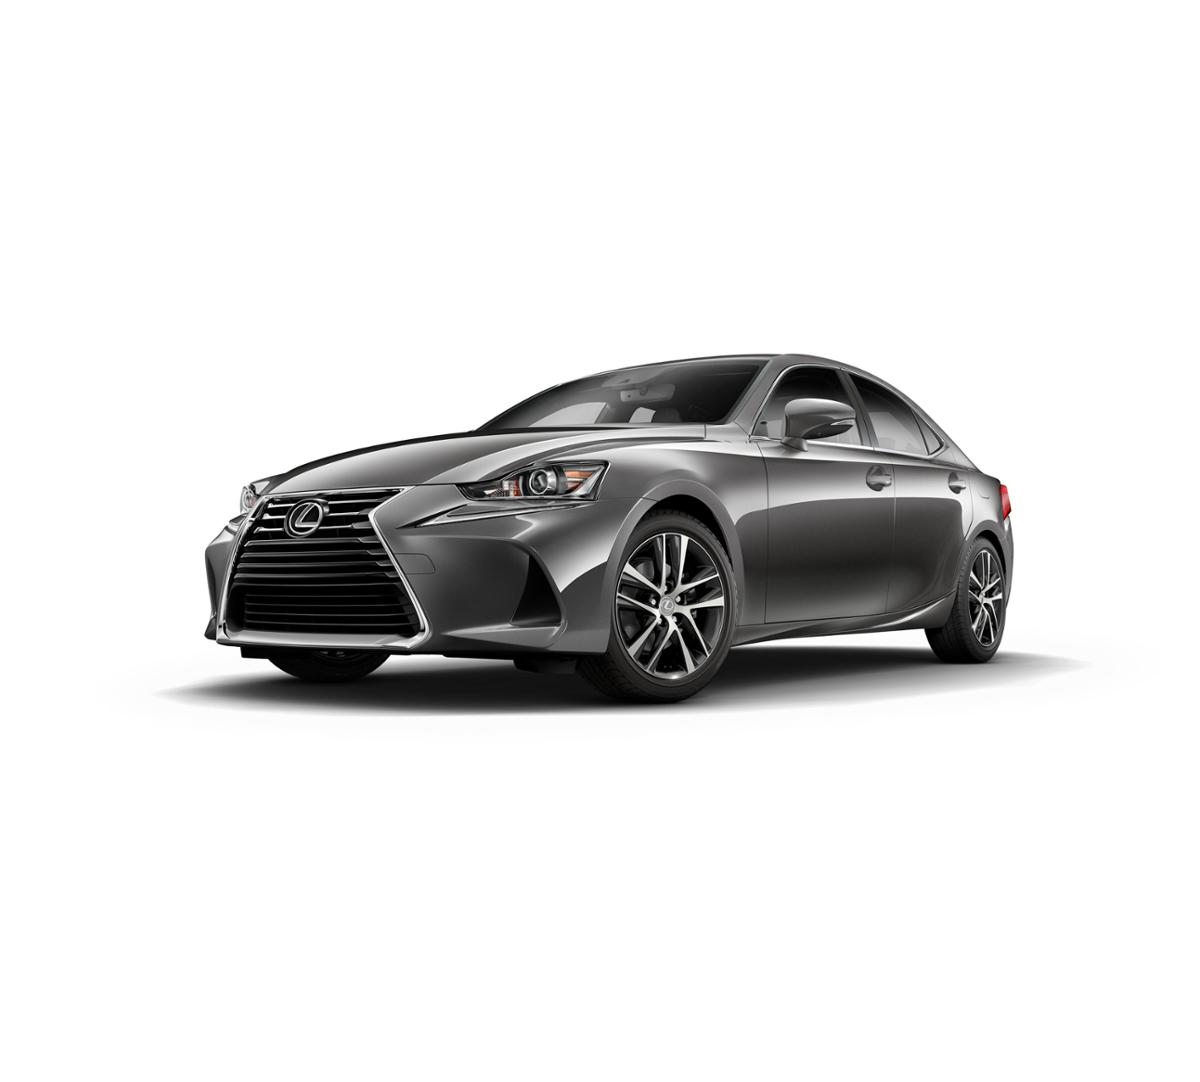 2019 Lexus IS 300 Vehicle Photo in Santa Monica, CA 90404